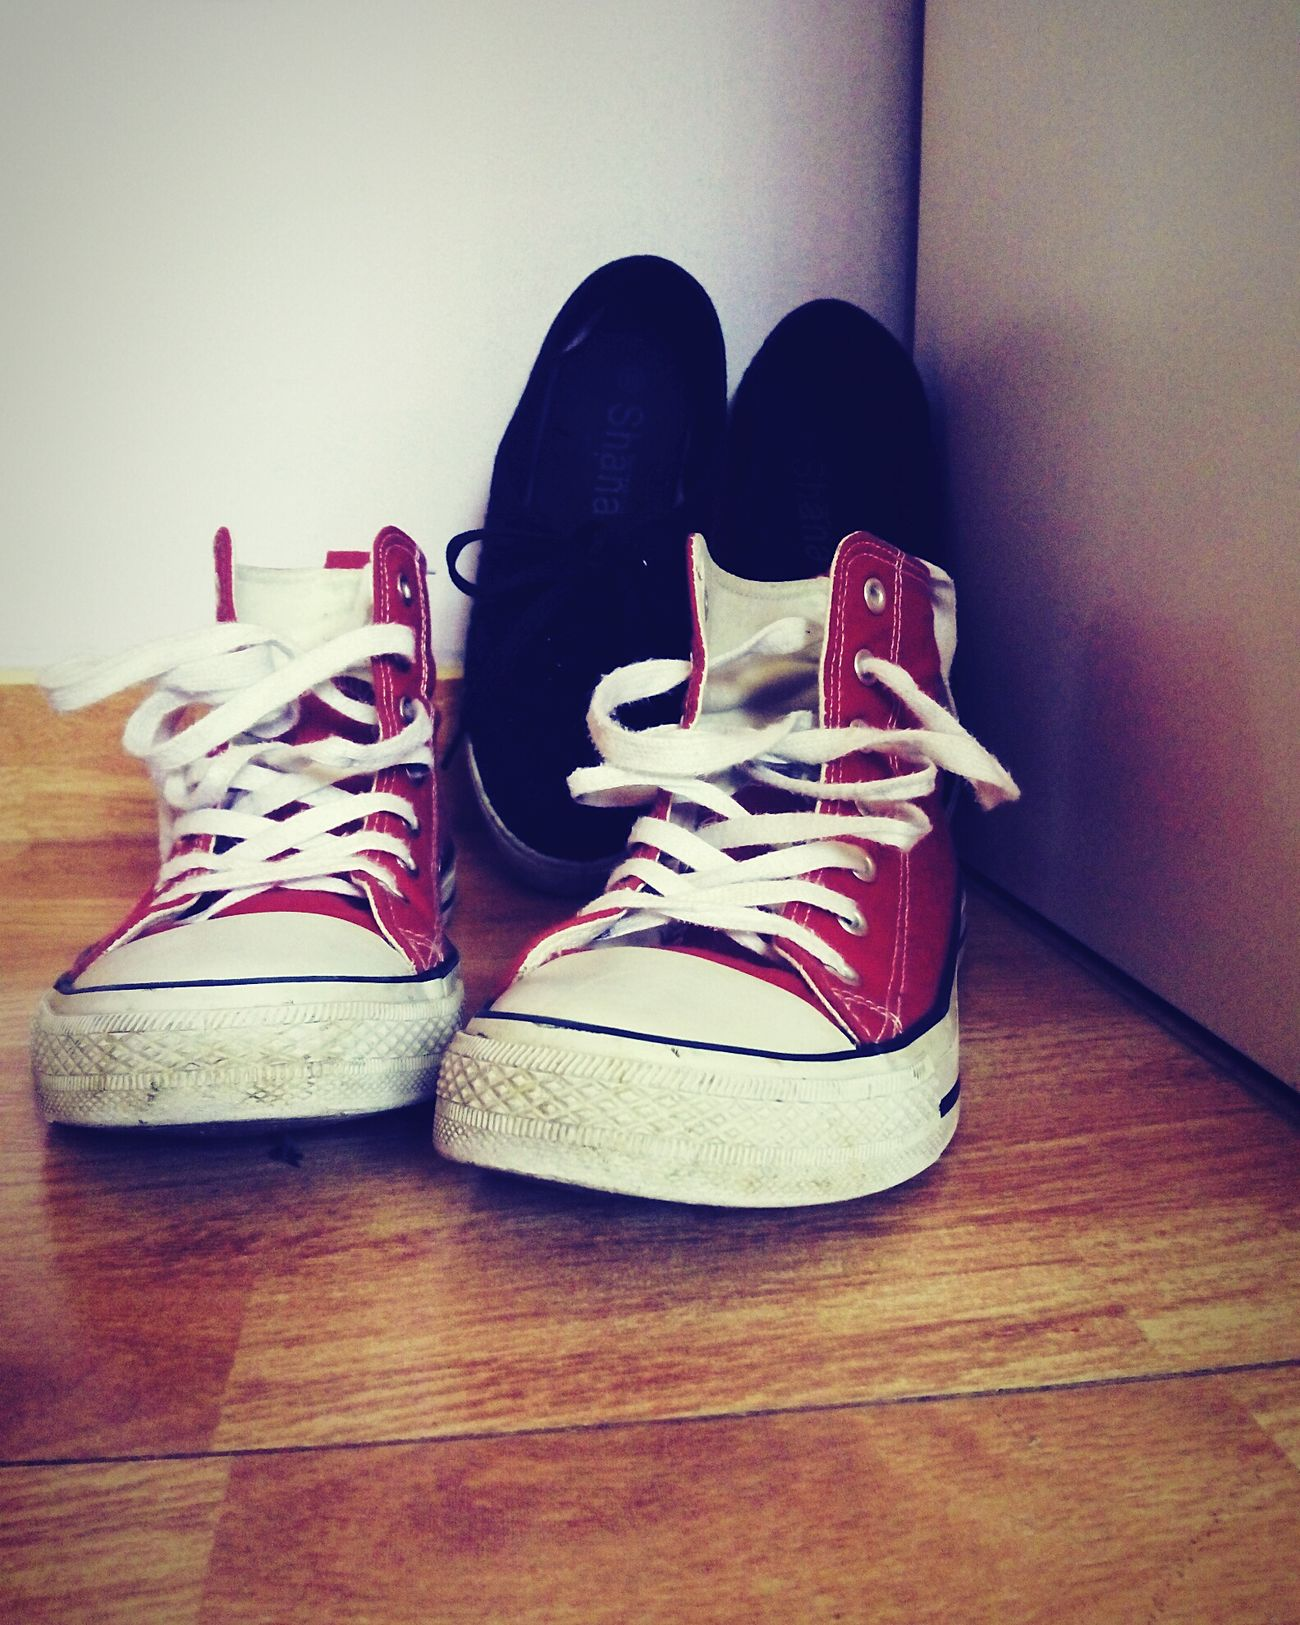 When you don't want to do your homework.... Inspired by nothing. Bored Lazy Afternoon Maths In My Bedroom Converse⭐ Old Shoes Cool Style My Day España🇪🇸 Españoles Y Sus Fotos